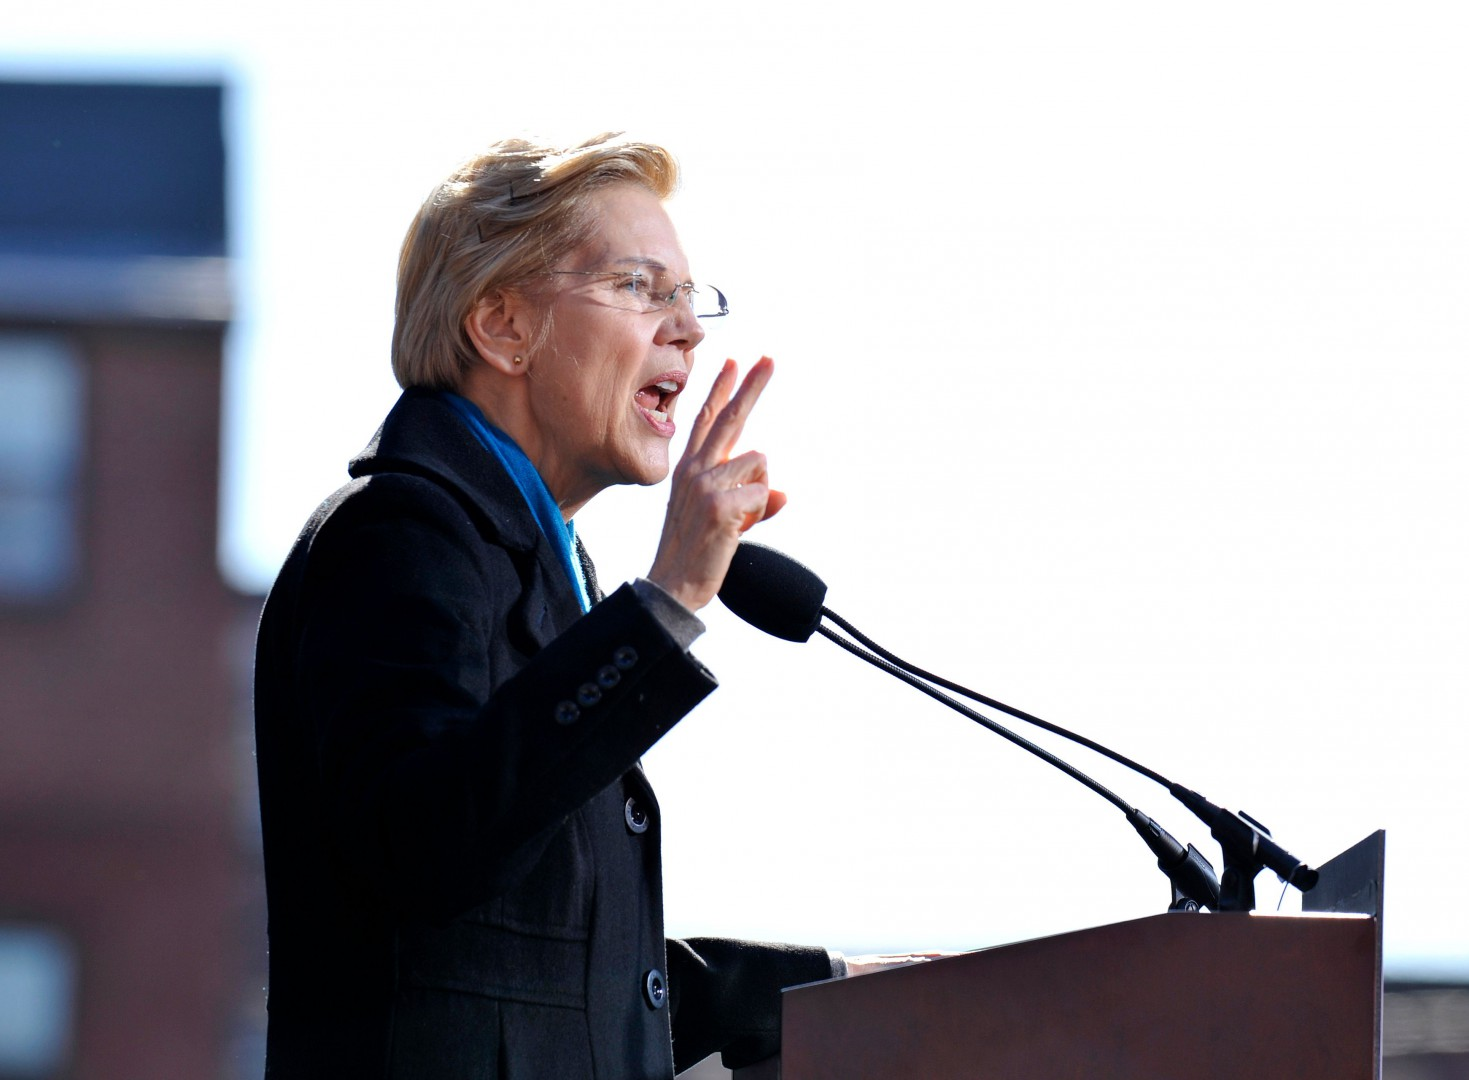 US Senator Elizabeth Warren announces her entry into the 2020 US presidential race on February 9, 2019, in Lawrence, Massachusetts. - The Massachusetts senator -- who announced her intention to run on New Year's Eve -- is among the highest-profile of the growing pool of Democrats hoping to unseat President Donald Trump in 2020. (Photo by Joseph PREZIOSO / AFP)